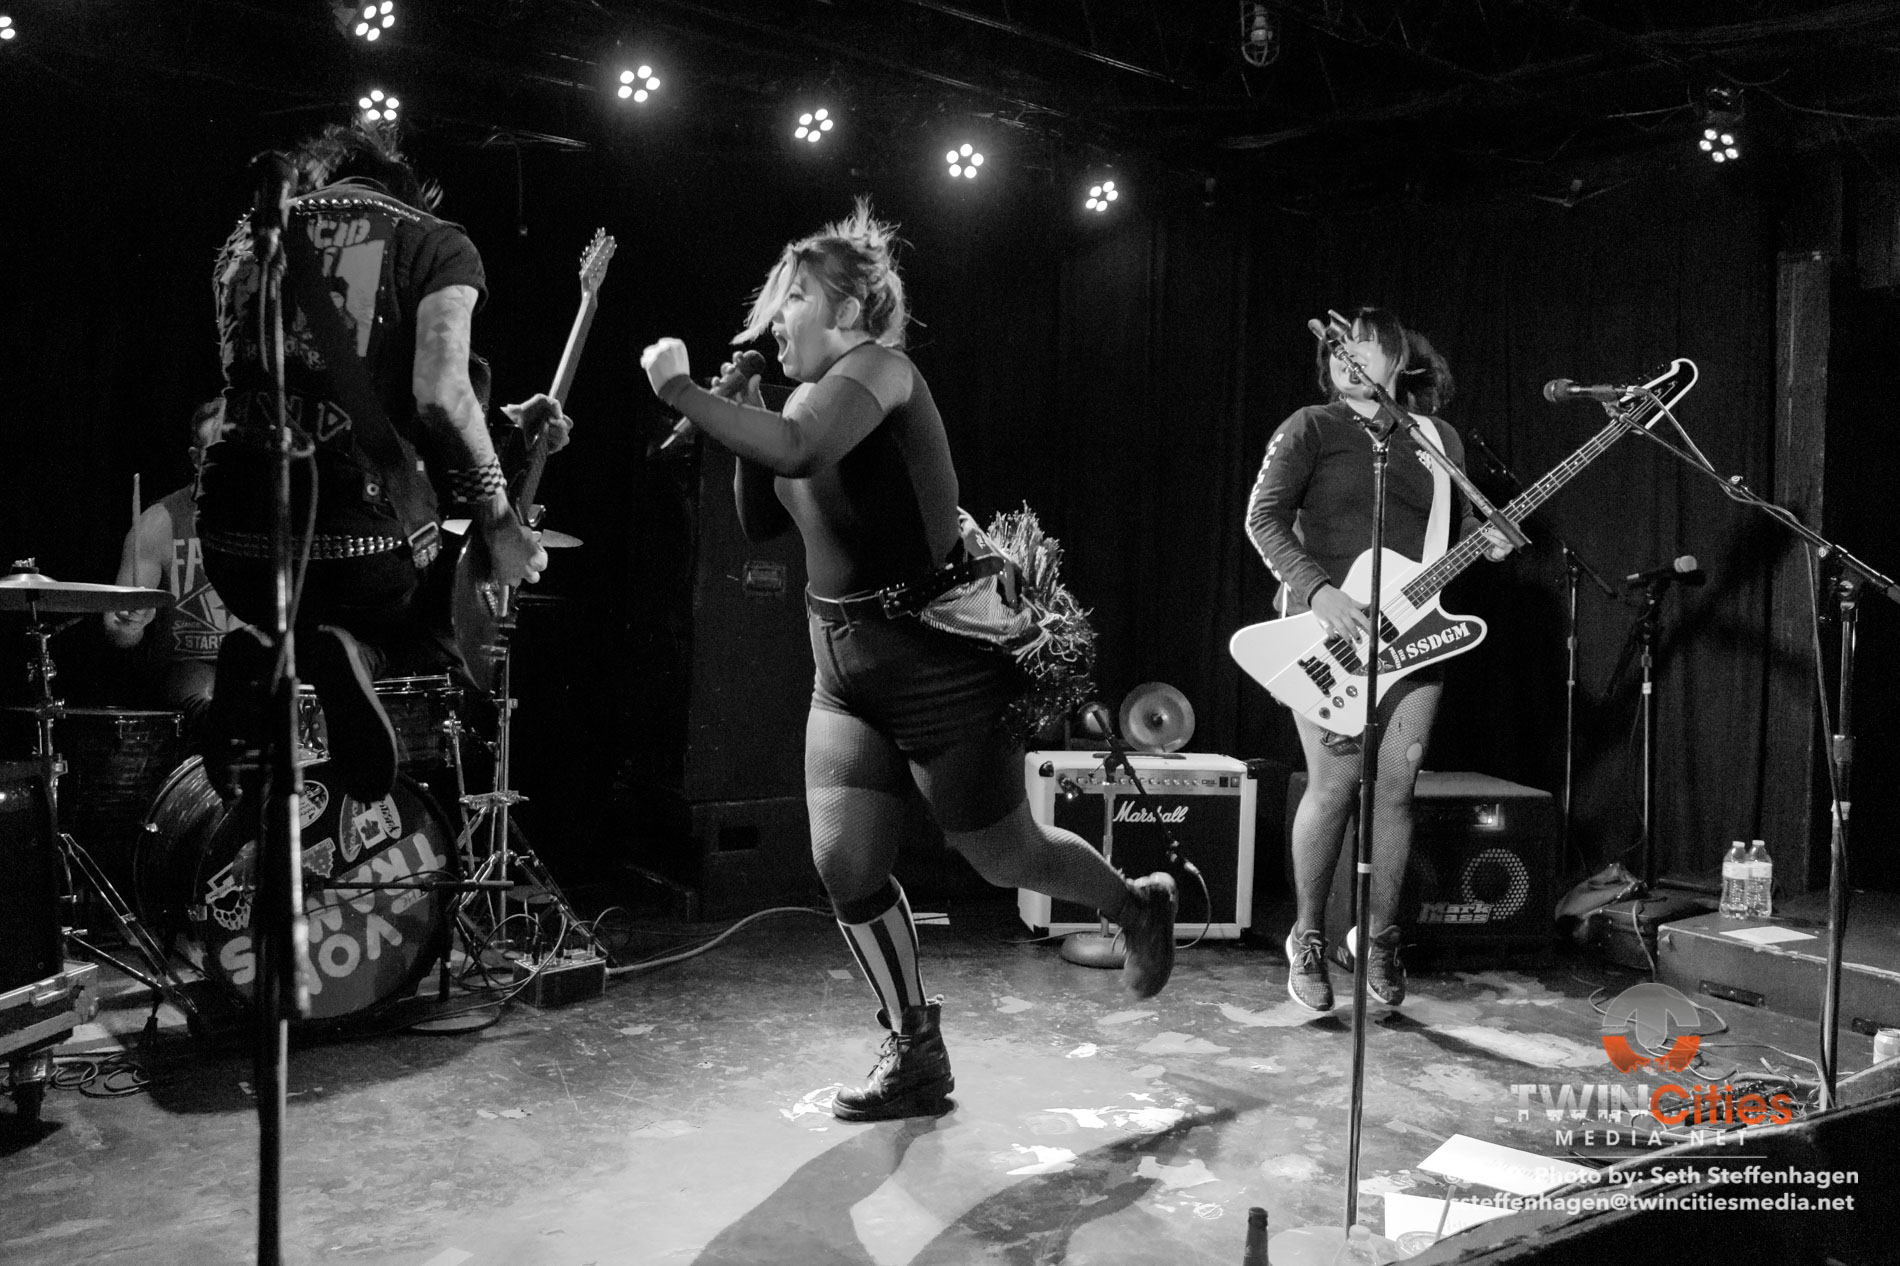 May 2, 2019 - Minneapolis, Minnesota, United States -  The Von Tramps live in concert at the 7th Street Entry opening for Bridge City Sinners.  (Photo by Seth Steffenhagen/Steffenhagen Photography)